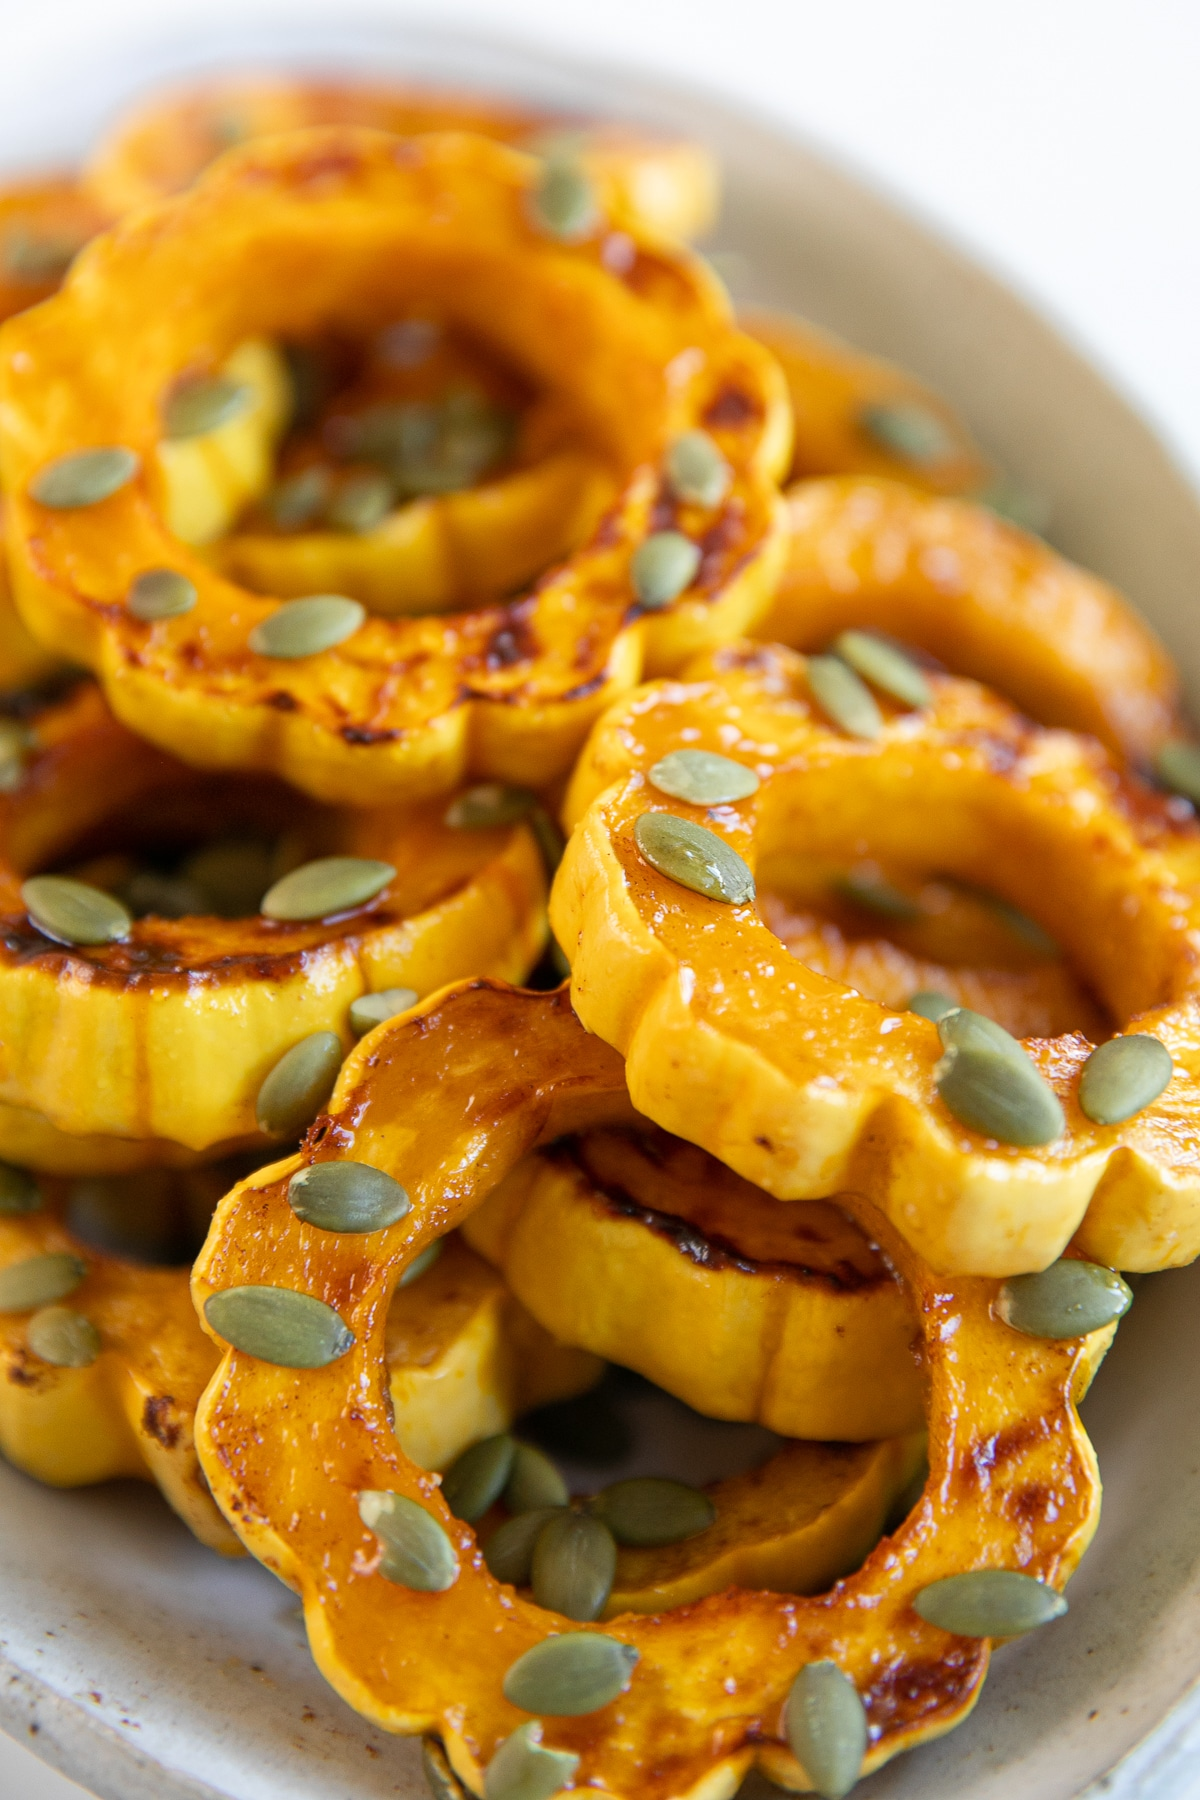 White platter filled with roasted delicata squash rings roasted in maple syrup, cinnamon, and sprinkled with pepitas.